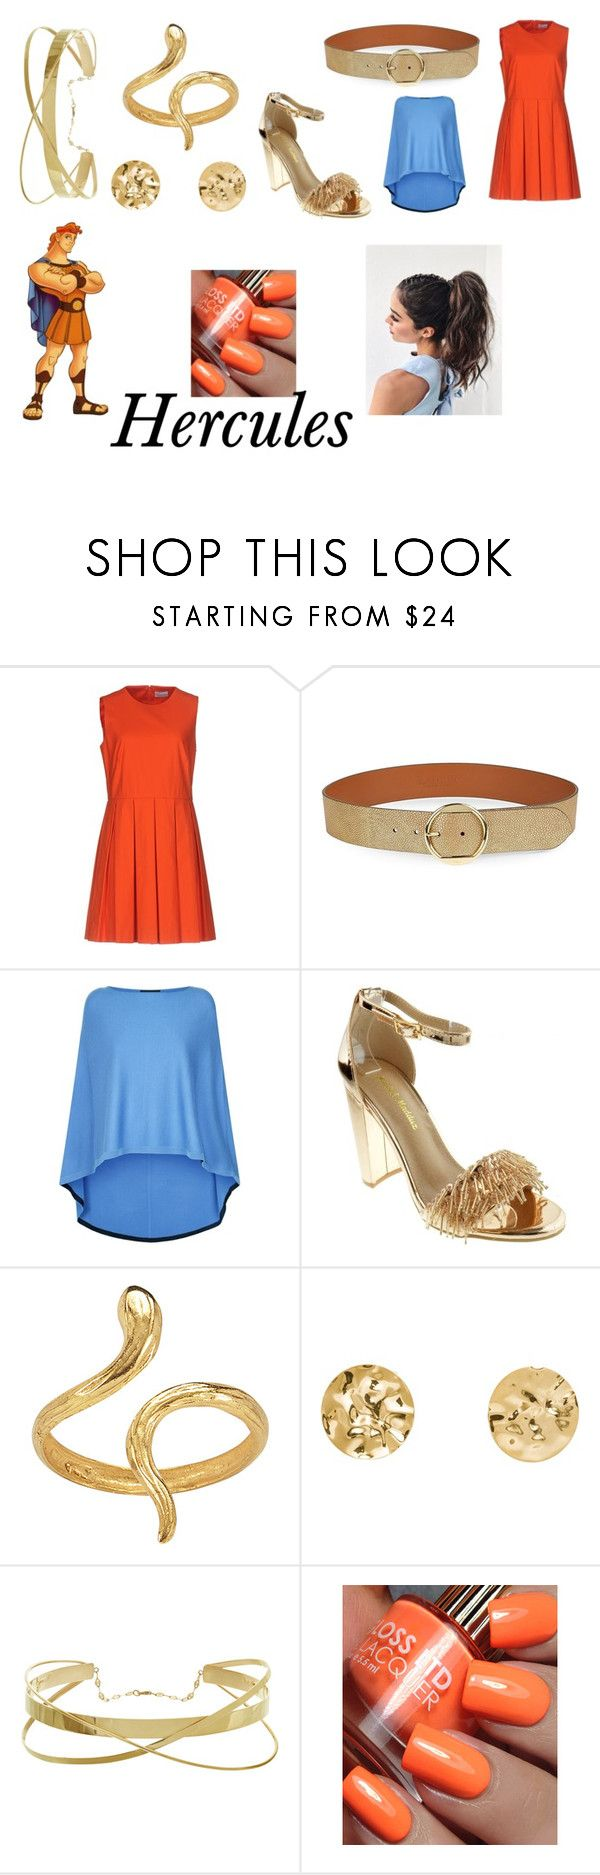 """""""Hercules"""" by jellymatias on Polyvore featuring RED Valentino, Lauren Ralph Lauren, St. John and Madina Visconti di Modrone"""